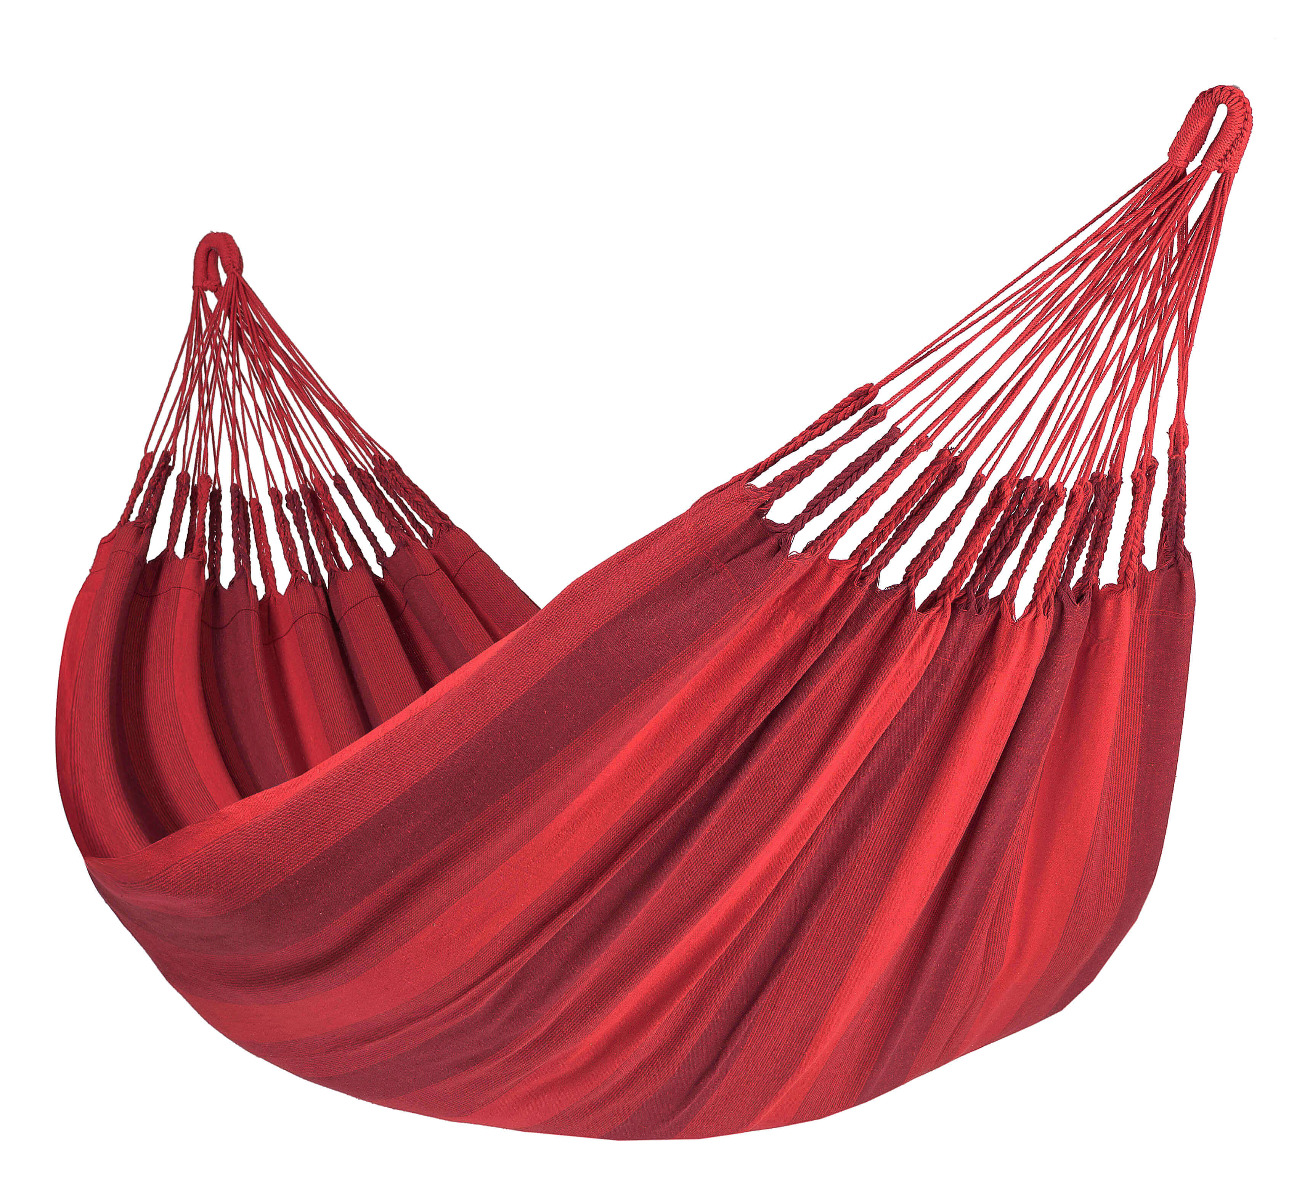 'Dream' Red E�npersoons Hangmat - Rood - Tropilex �